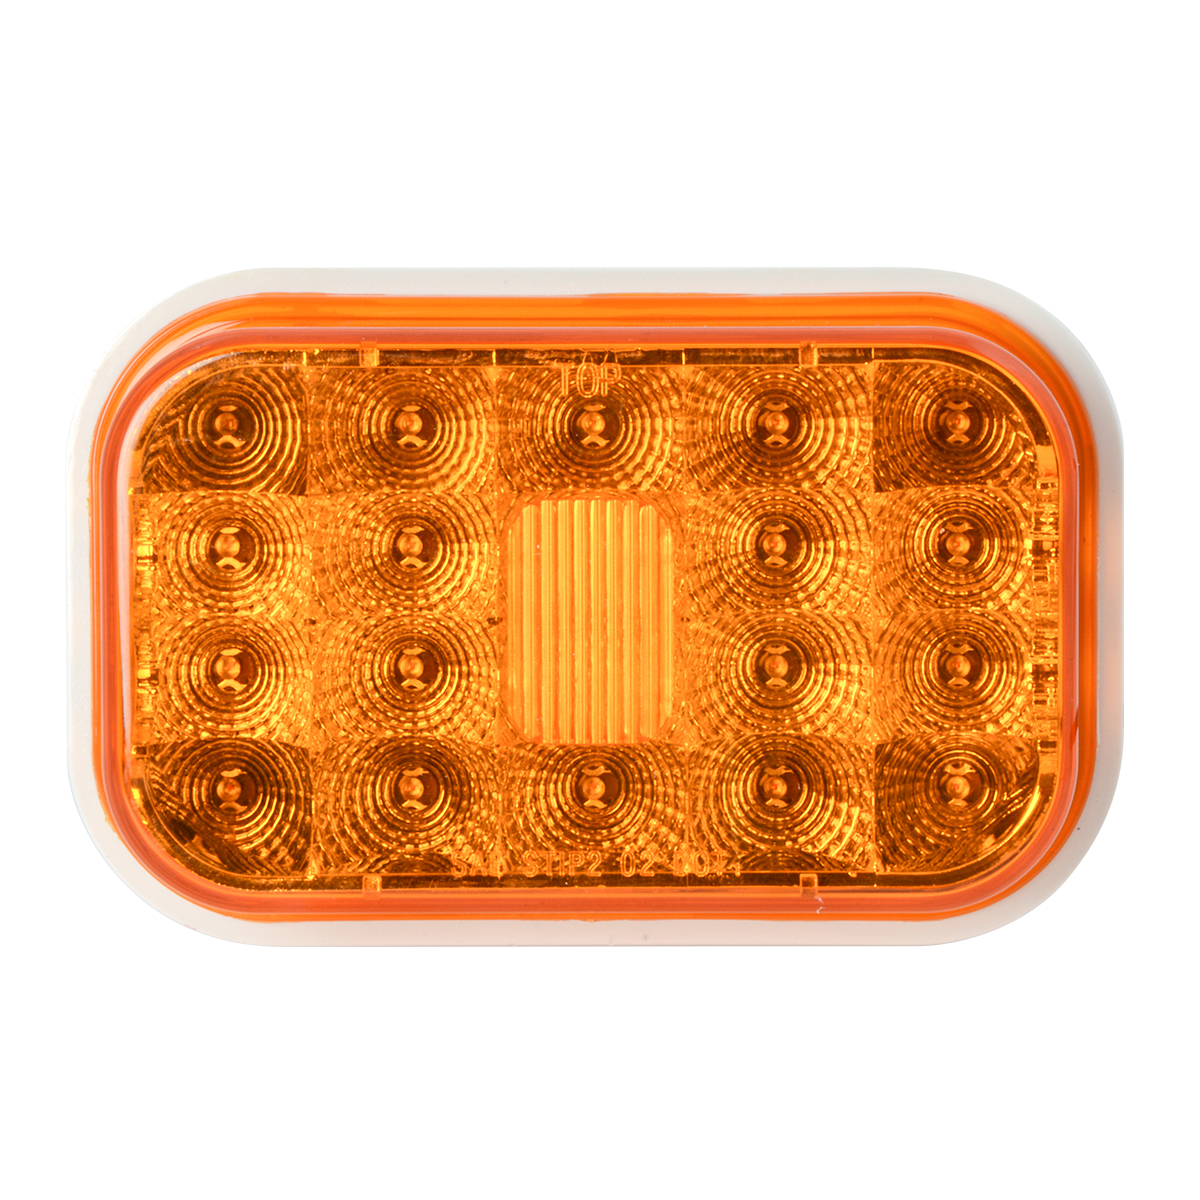 77460 High Profile Rectangular Spyder LED Light in Amber/Amber